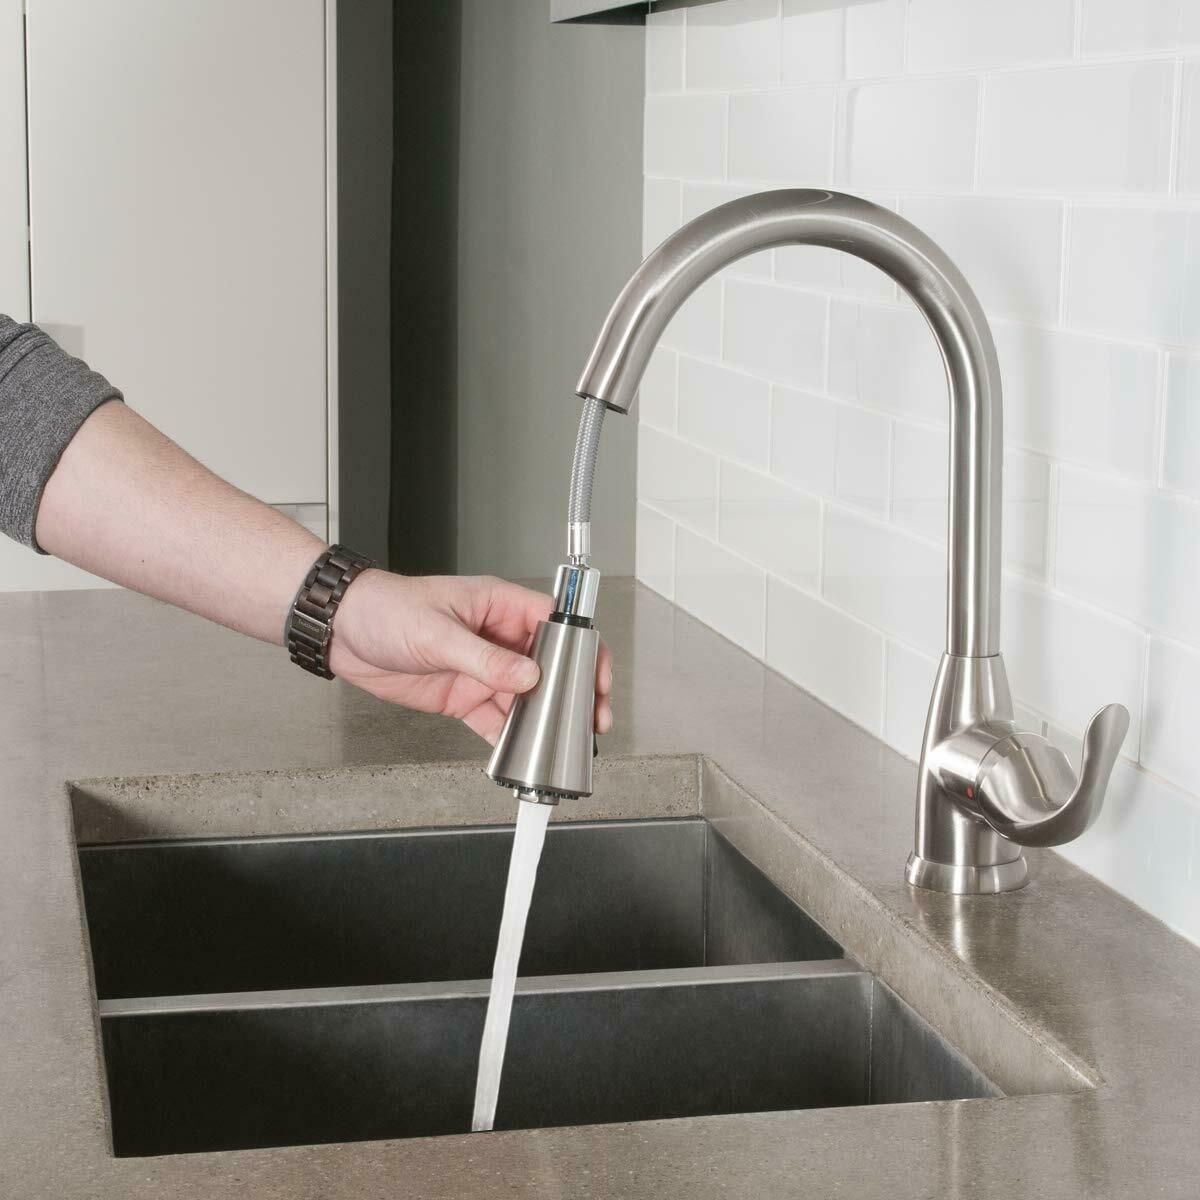 Brushed Nickel Kitchen Sink Faucet Pull Down Sprayer With 10